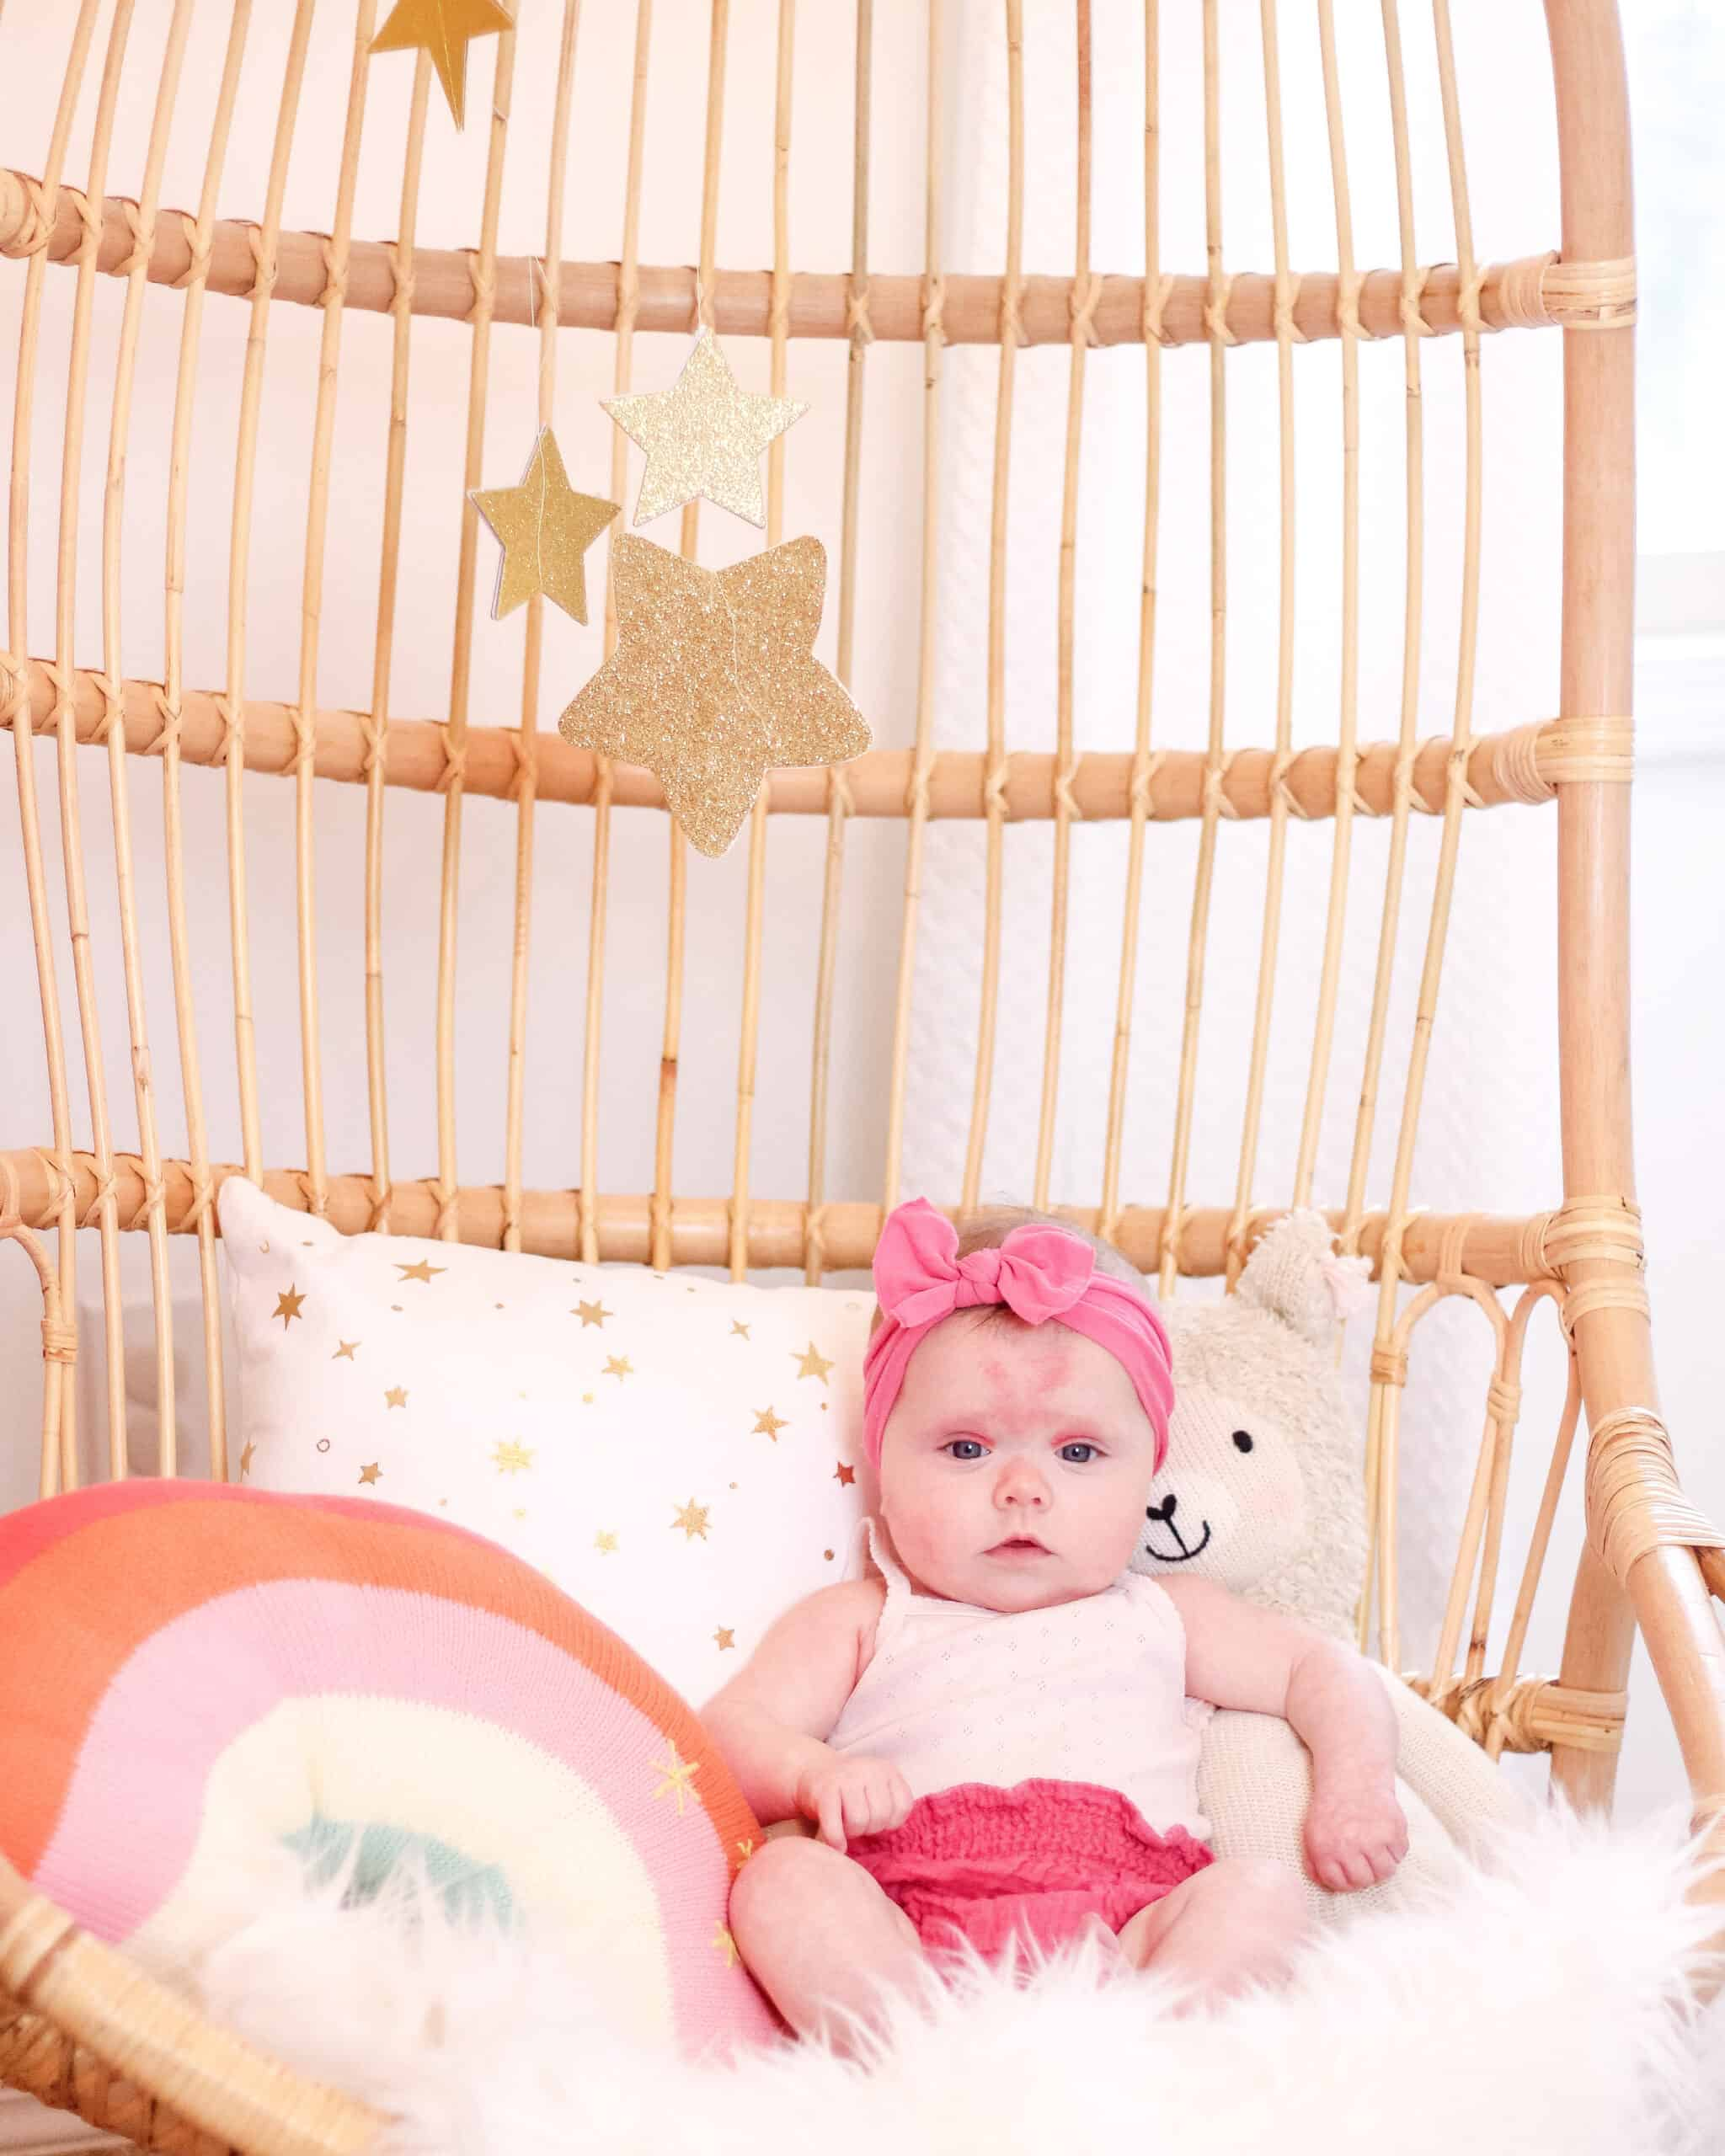 4 month old baby in rattan chair